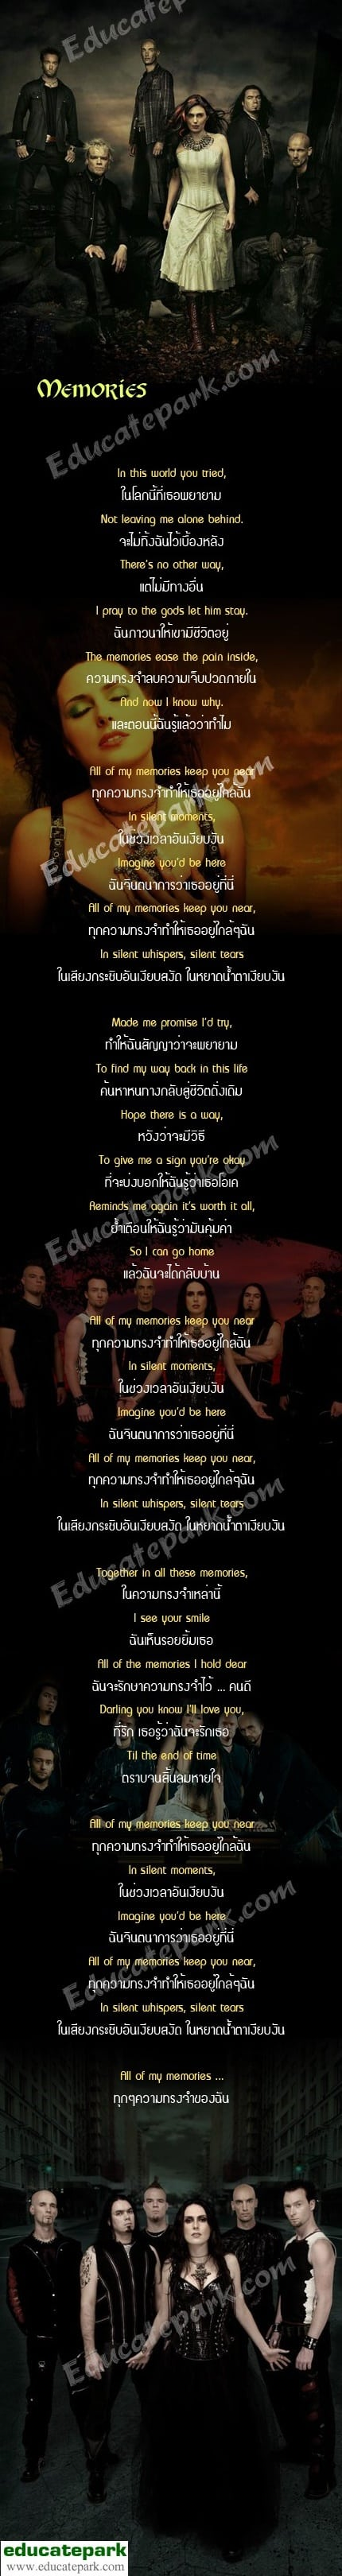 แปลเพลง Memories - Within temptation